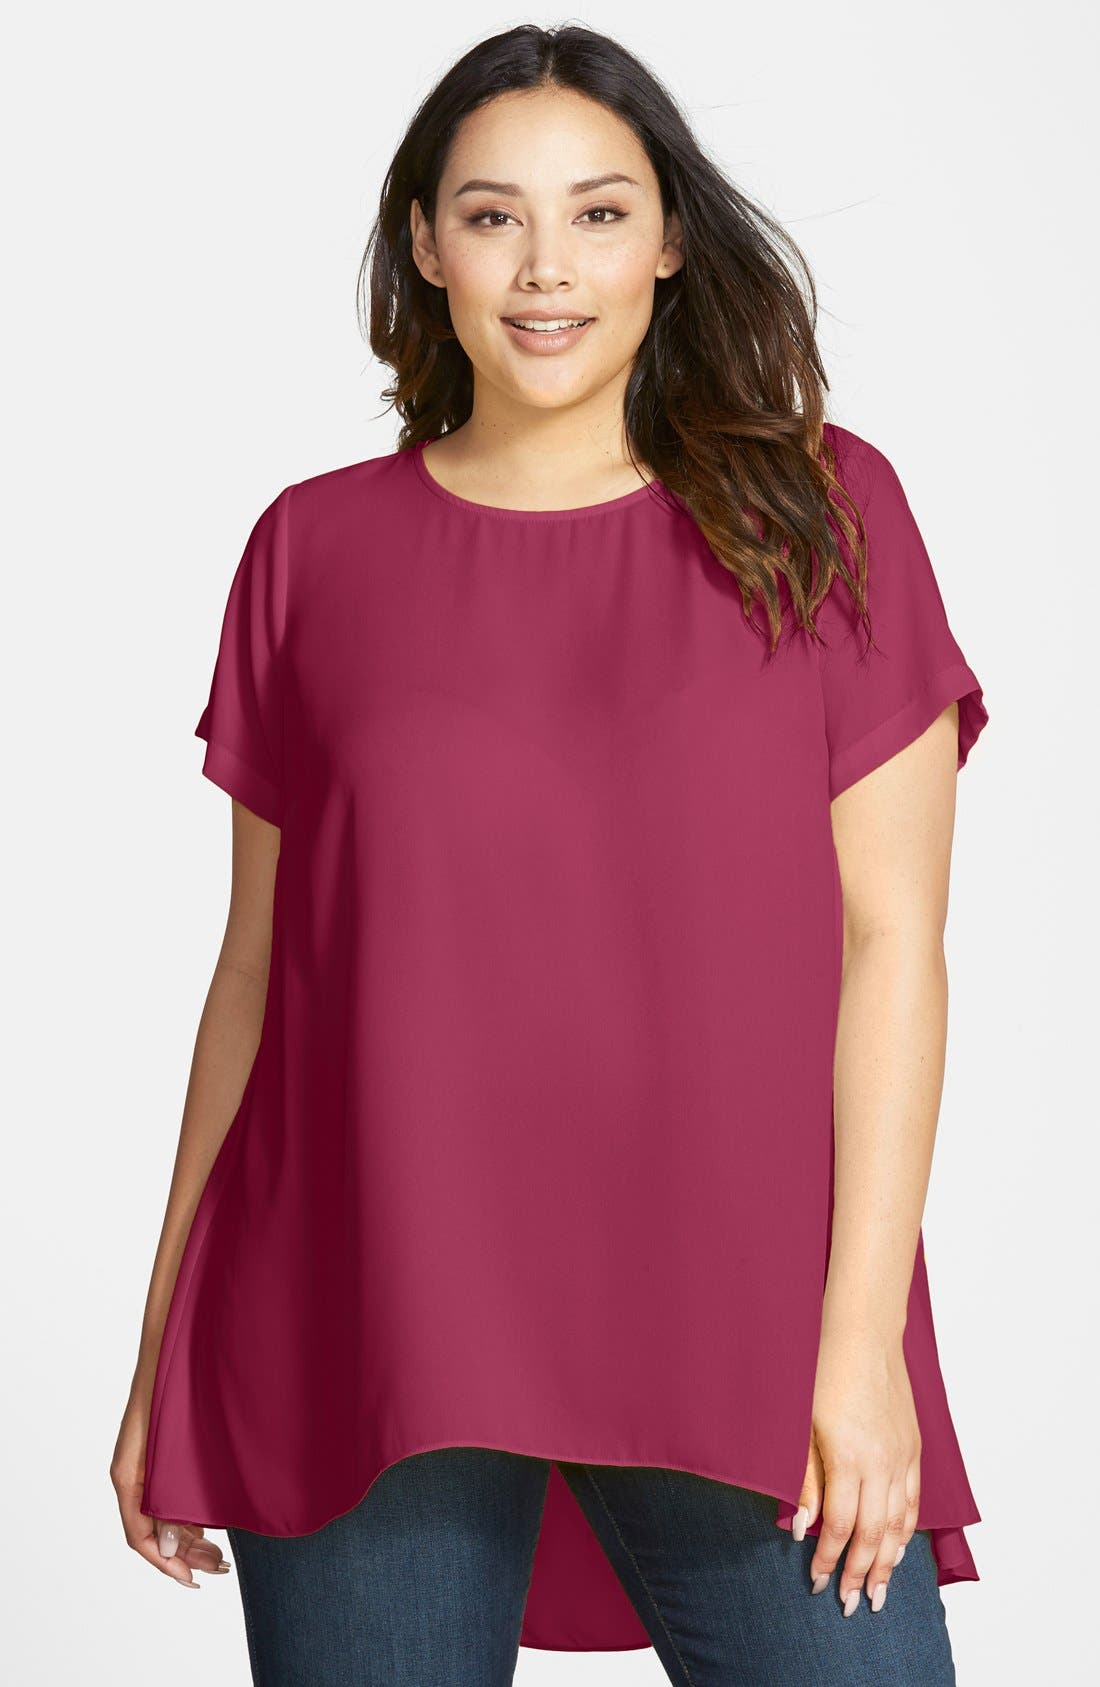 Alternate Image 1 Selected - Vince Camuto Short Sleeve High/Low Hem Blouse (Plus Size)